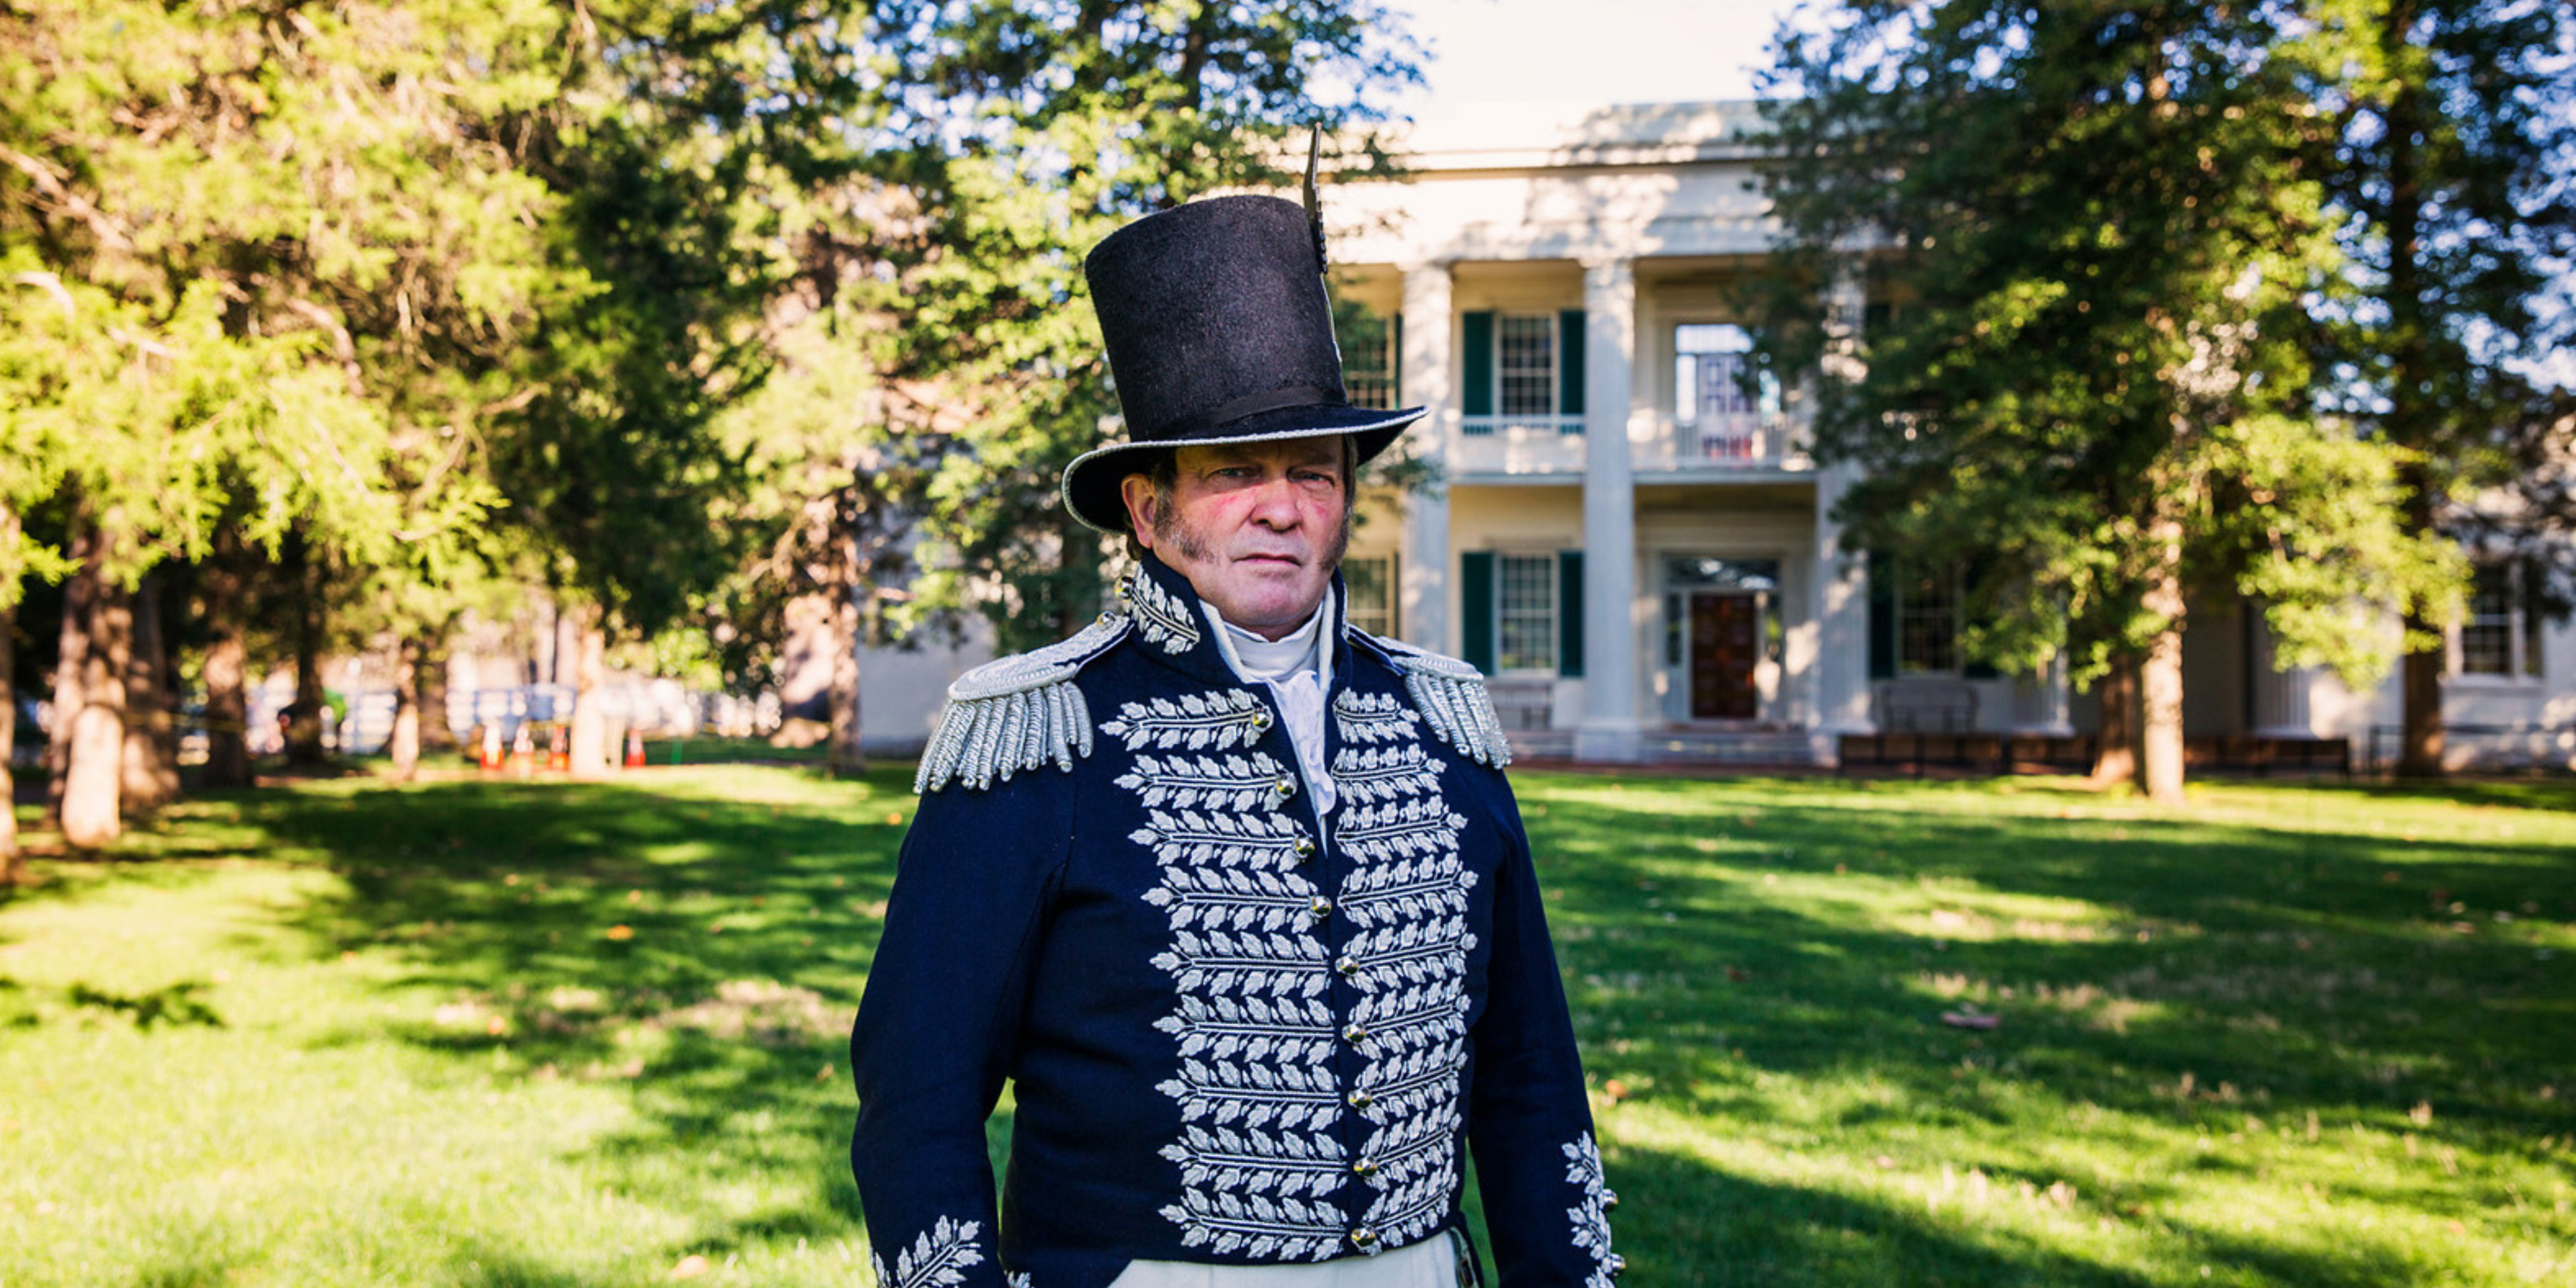 Andrew Jackson's Hermitage outside of main house with actor